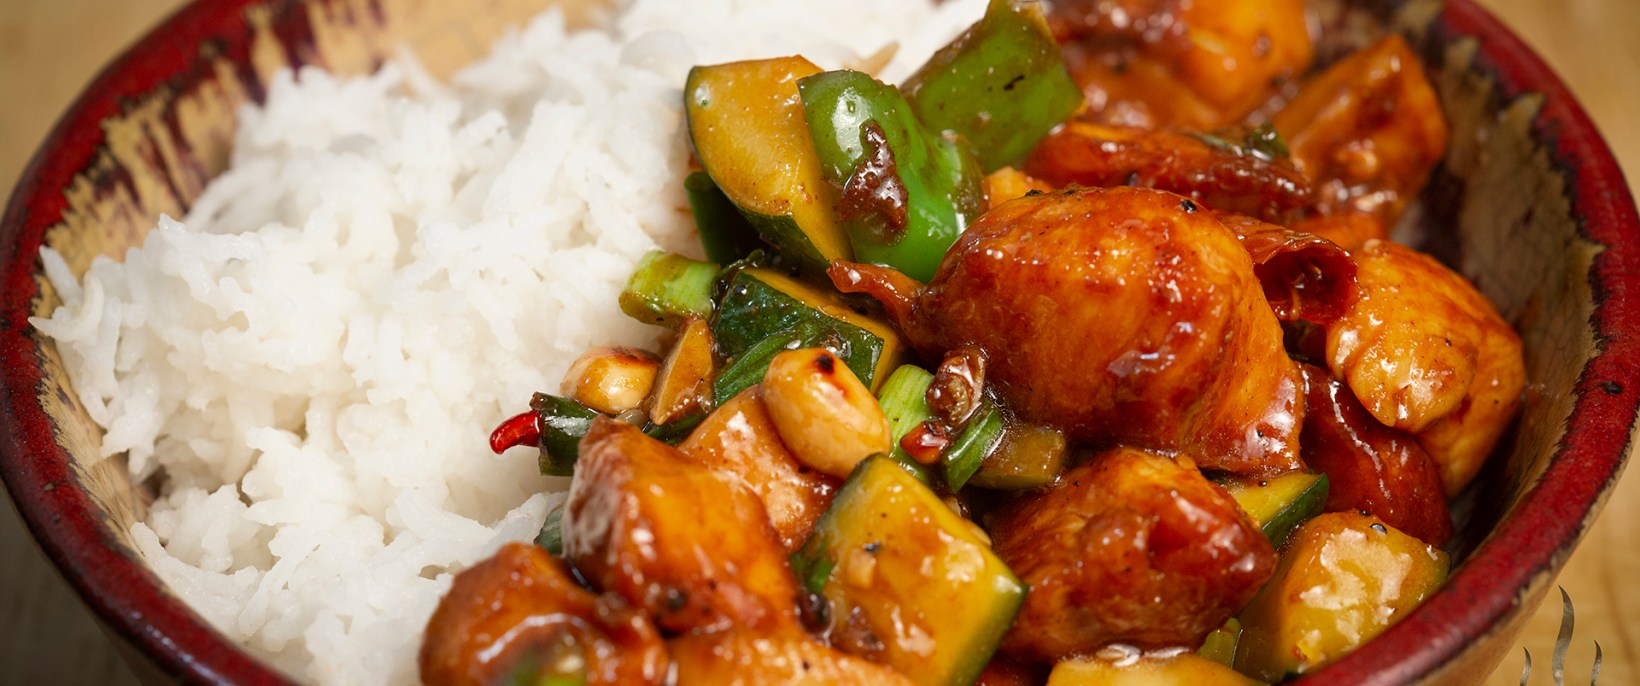 Authentic Kung Pao Chicken